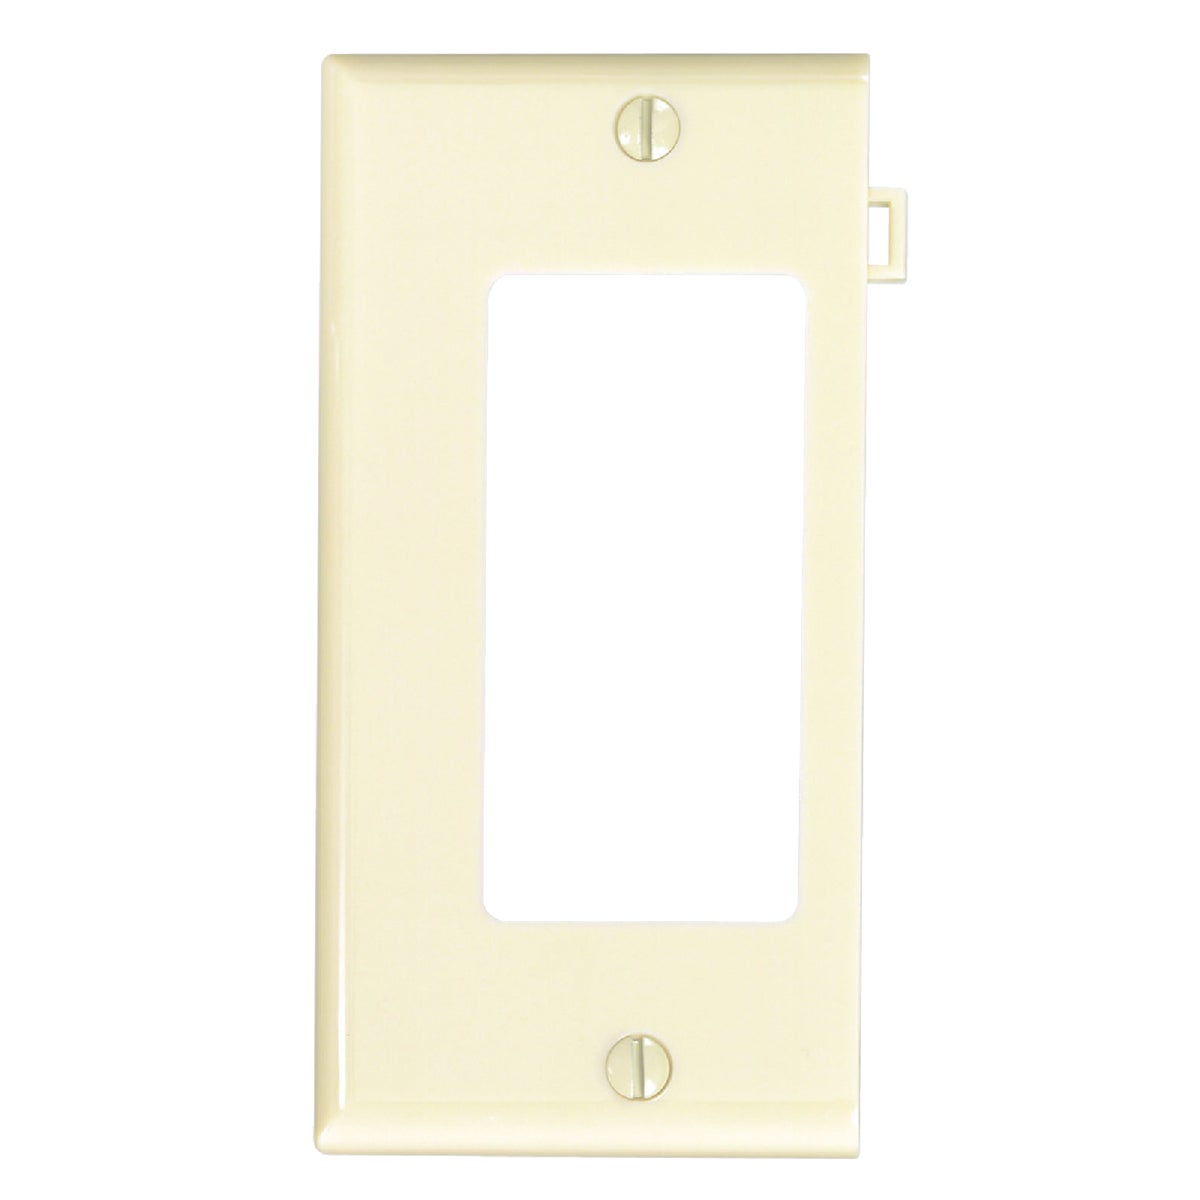 IV GFI END PLATE - PSE26I by Leviton Mfg Co